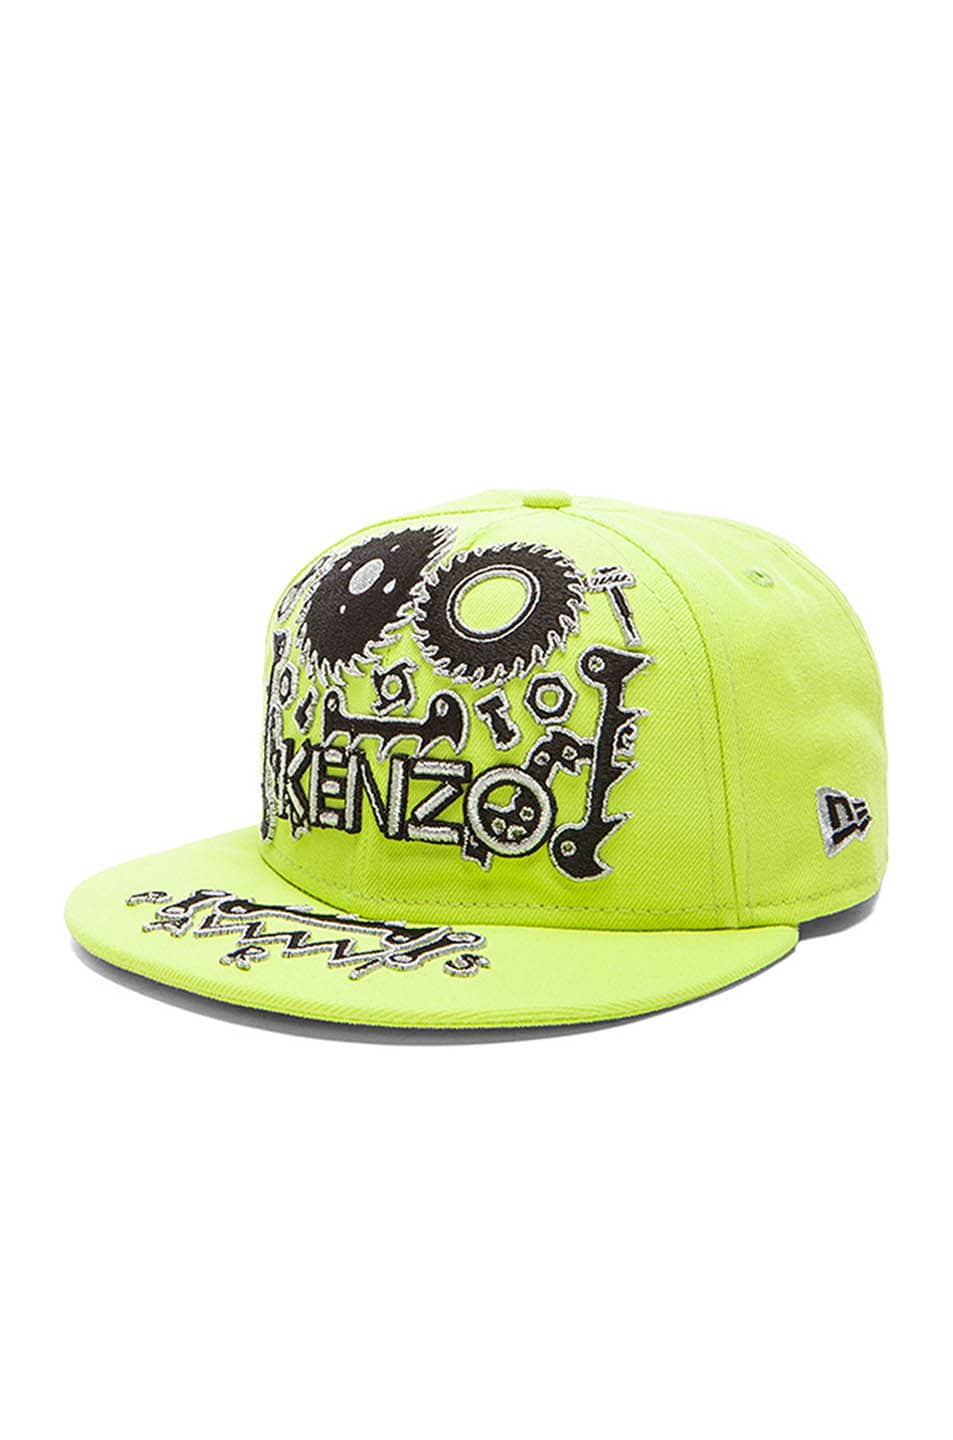 5702aa9940f35 Image 2 of Kenzo x New Era Monster Embroidery Cap in Green